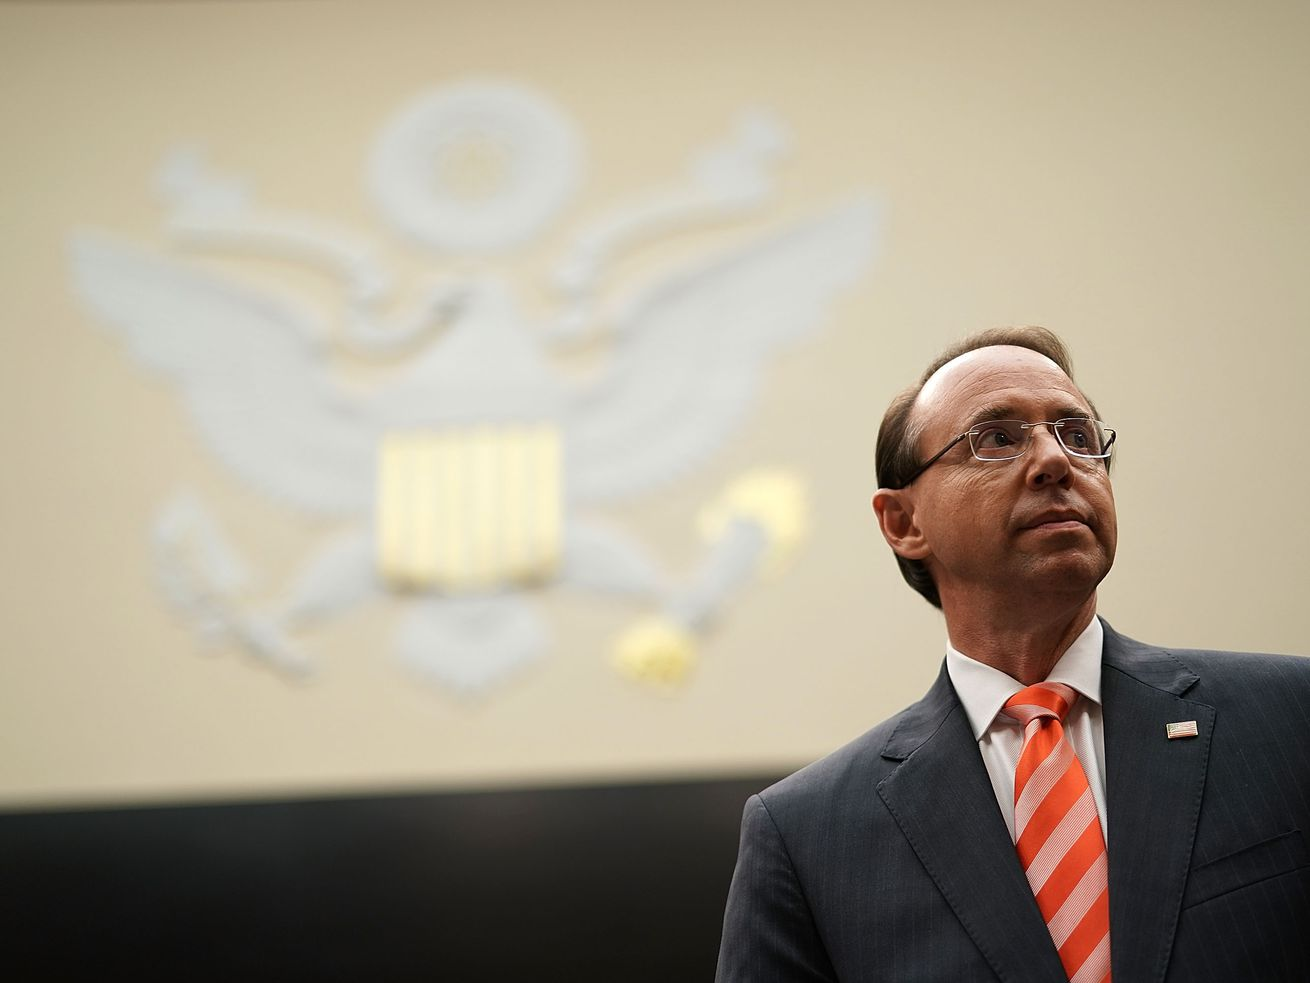 Deputy Attorney General Rod Rosenstein announced the new charges